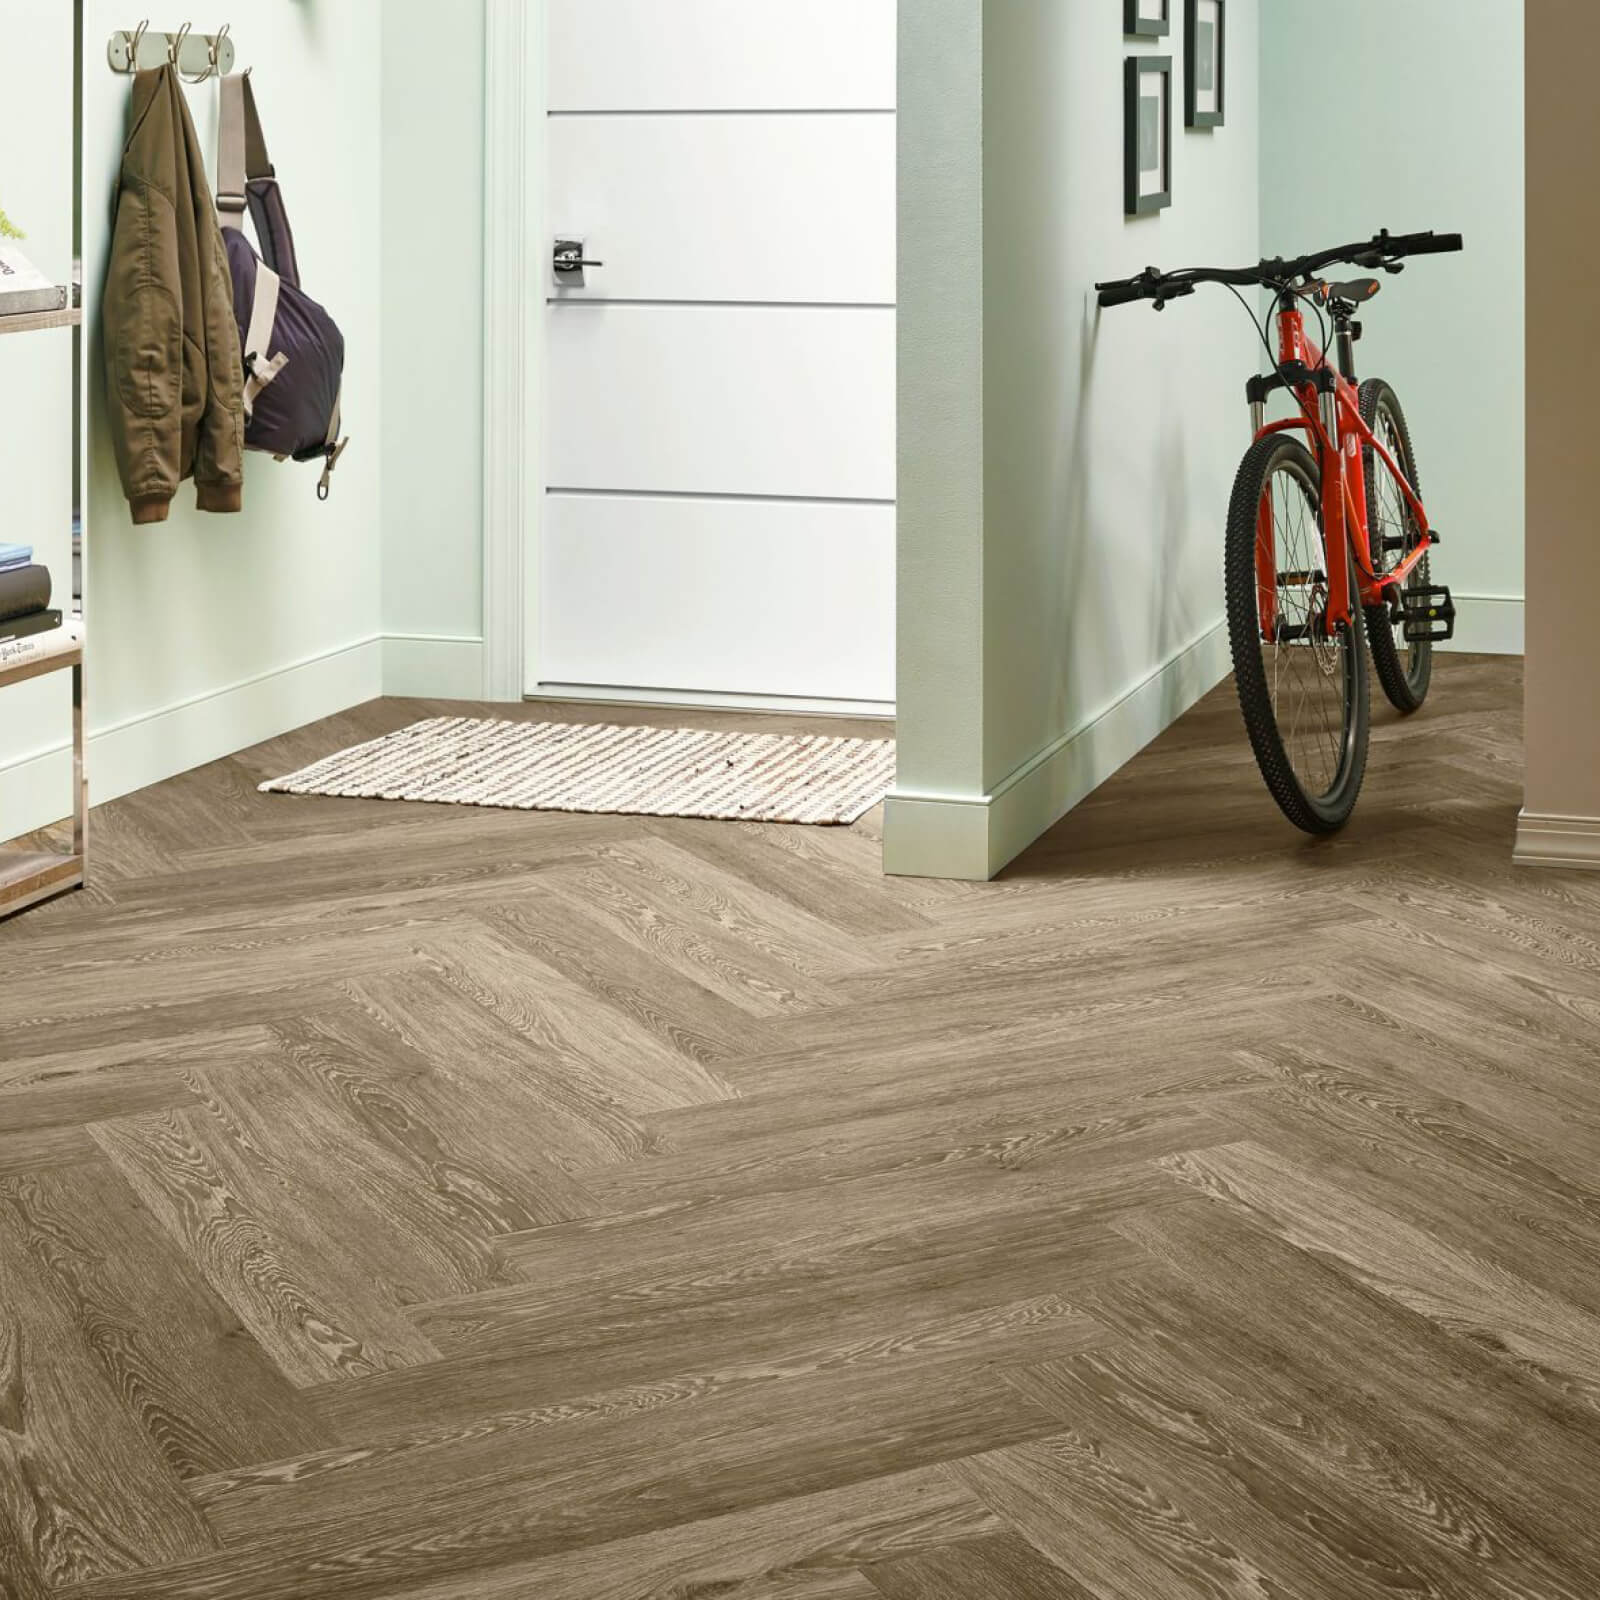 Bicycle on flooring | Boyle's Floor & Window Design